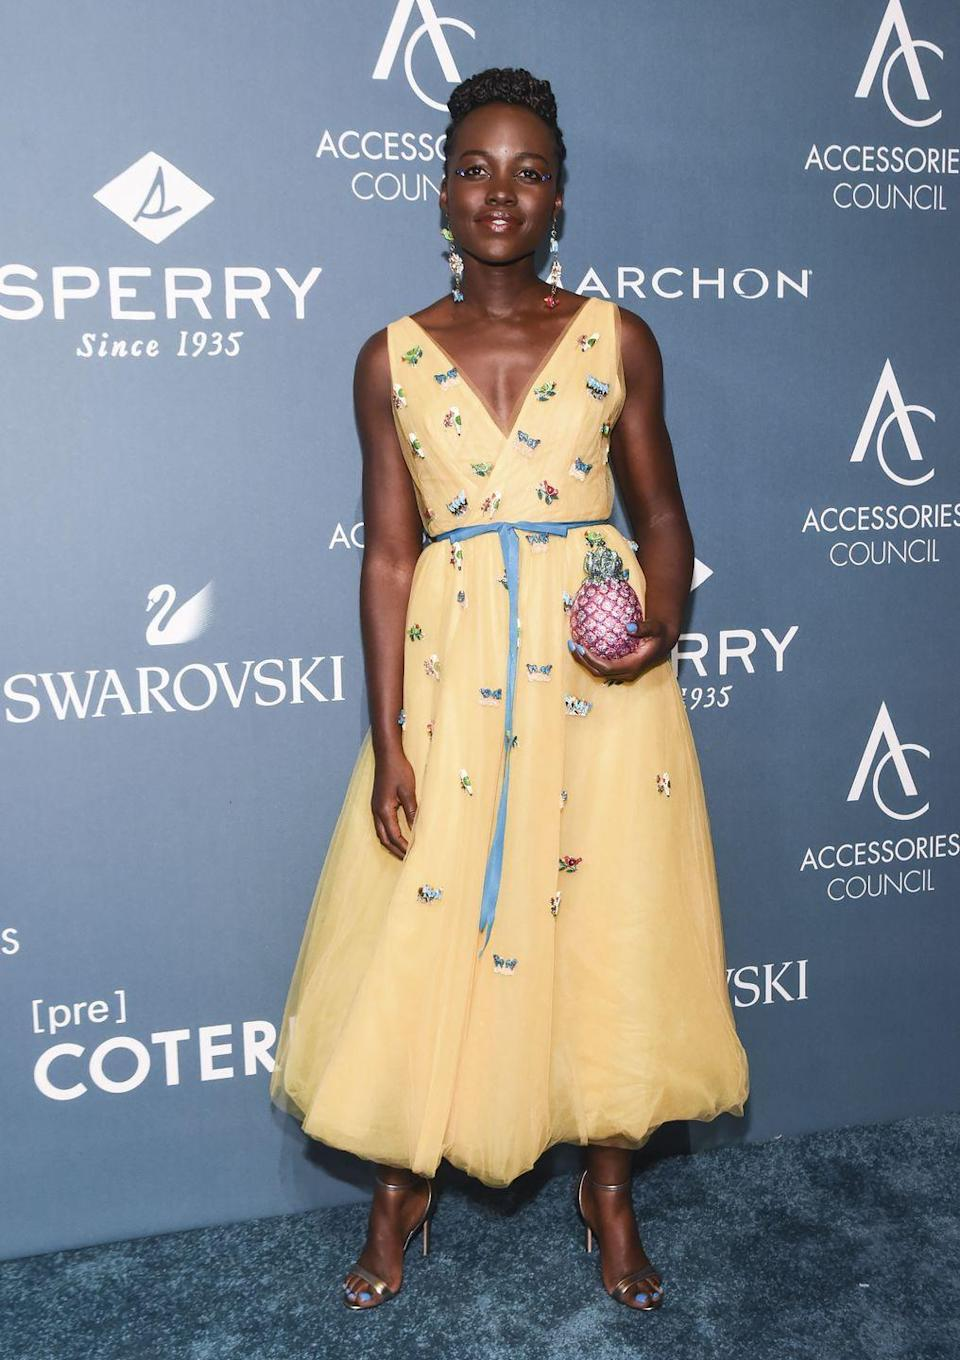 <p>The actress wore a Carolina Herrera dress with a Judith Leiber pineapple clutch to the Accessories Council ACE Awards in New York.</p>